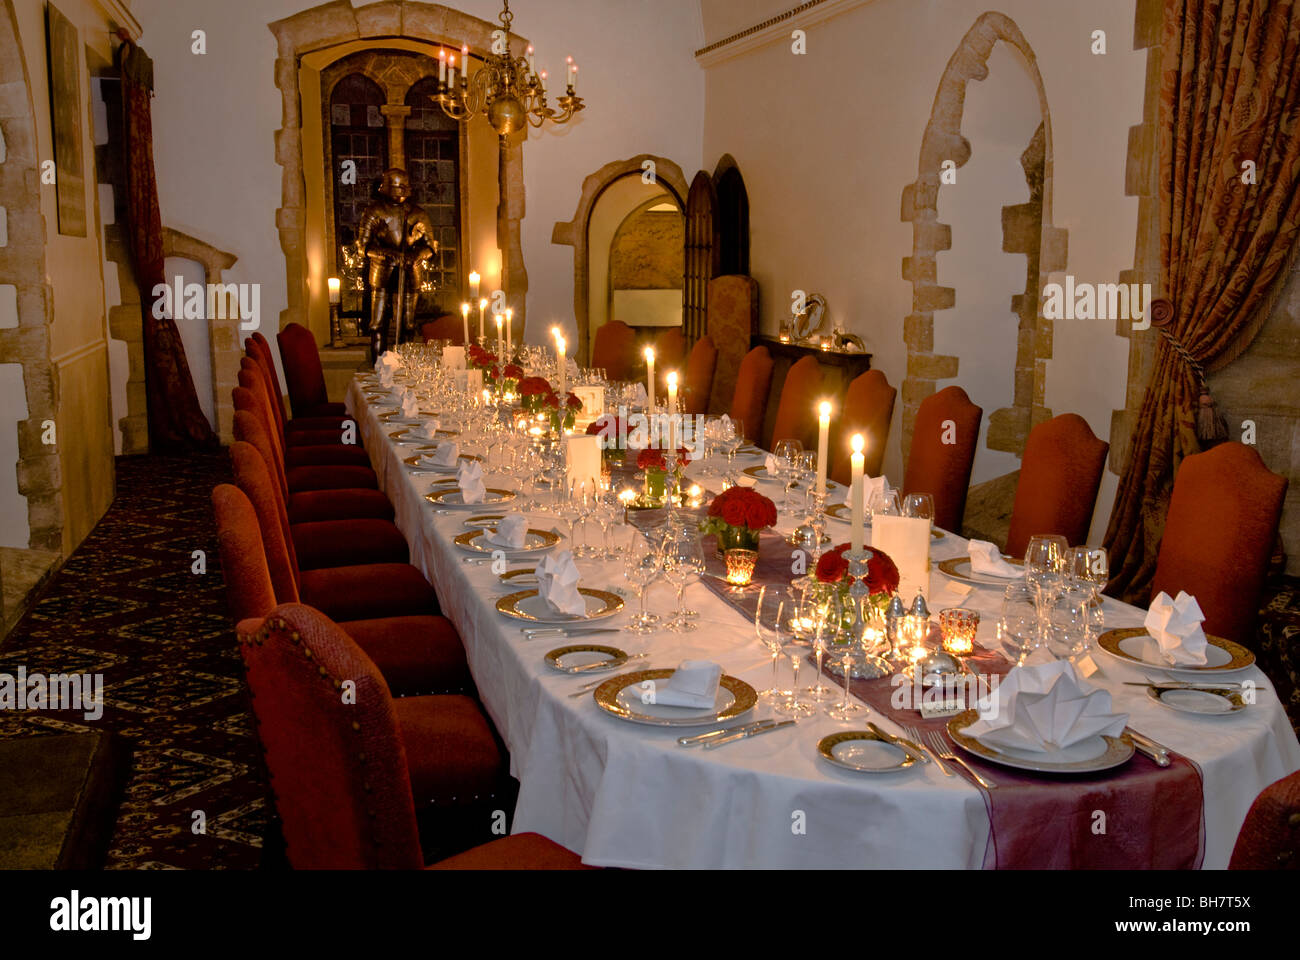 Castle Mansion Dinner Supper Candlelit Atmosphere Formal seated laid and prepared candlelit banquet dinner table Stock Photo